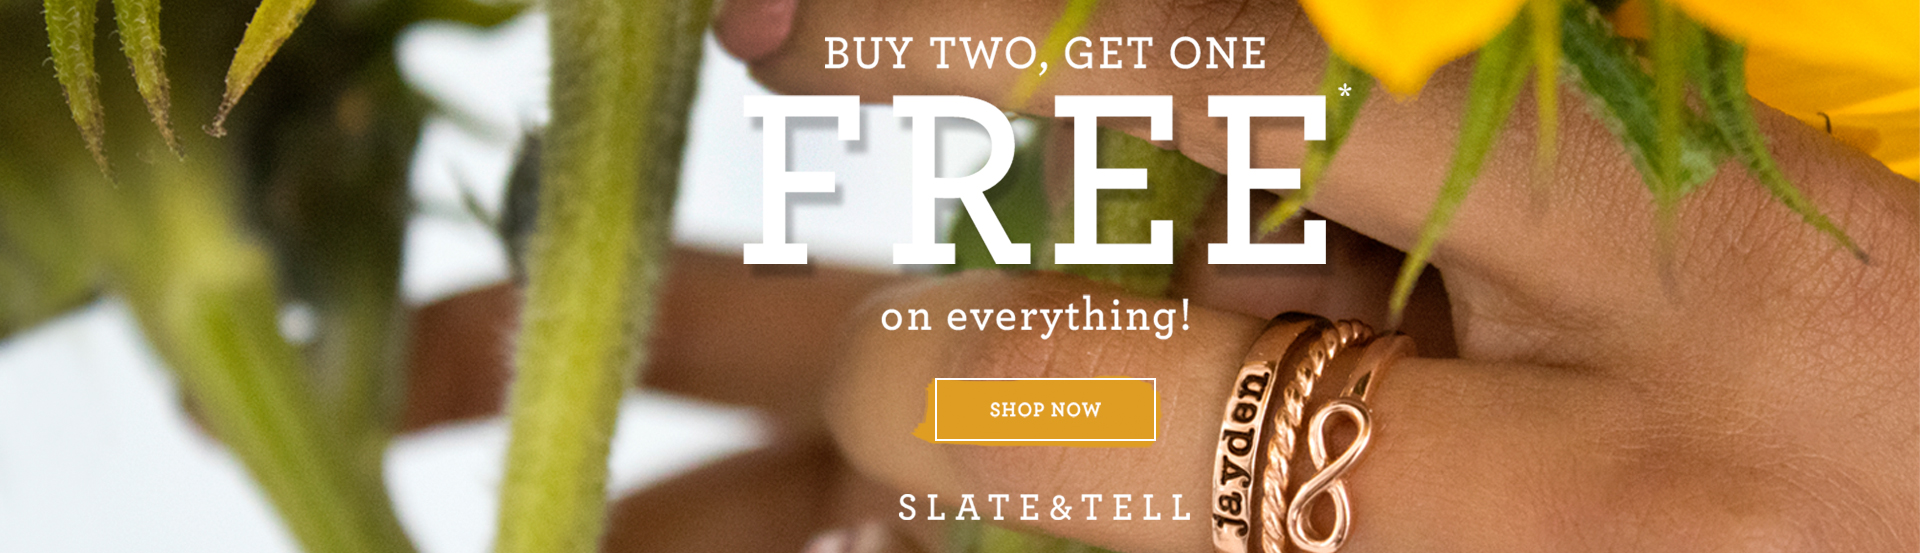 Buy 2 Get 1 Free Slate and Tell